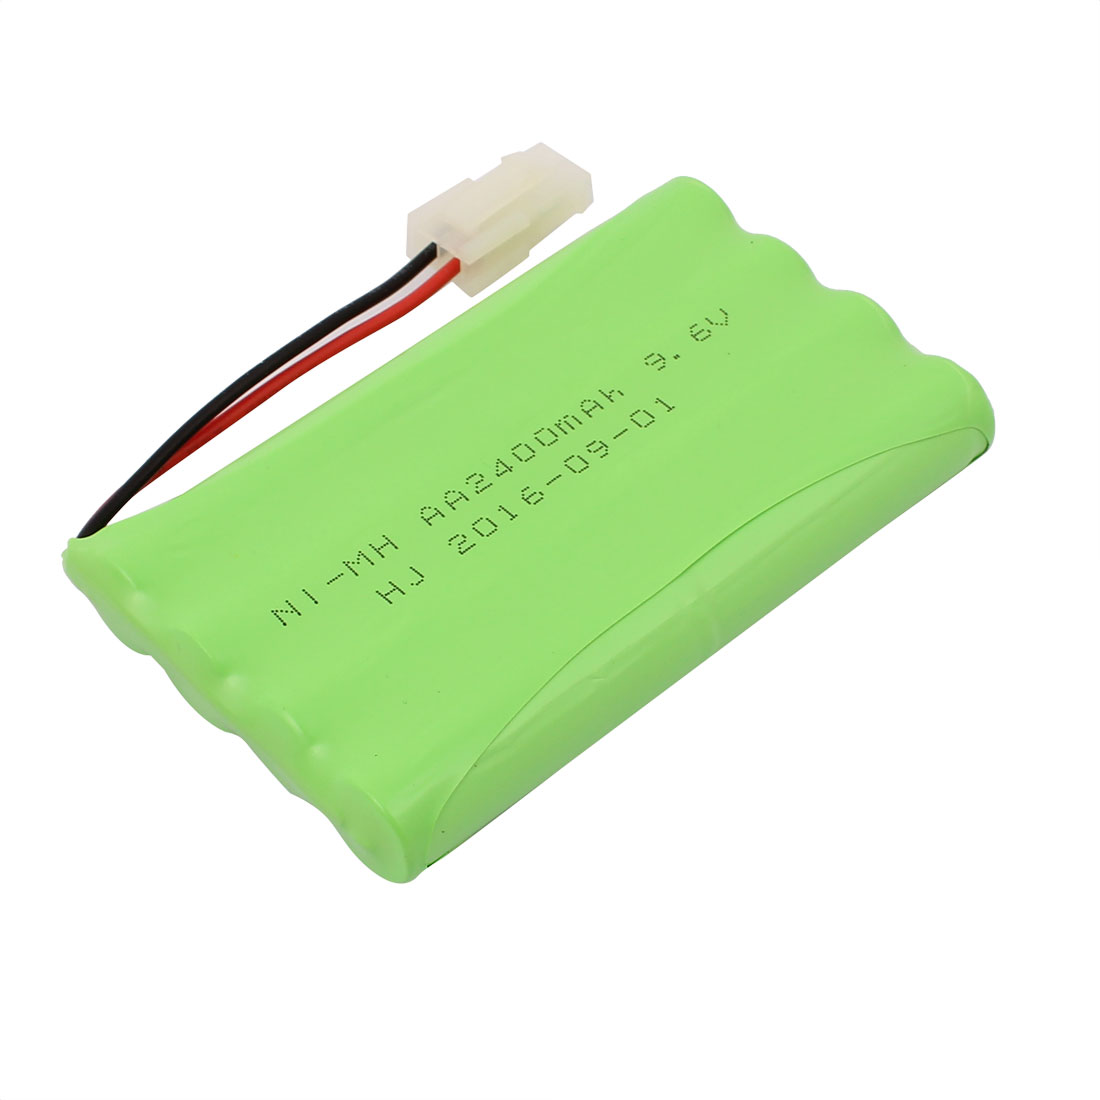 Unique Bargains Green DC 9.6V 2400mAh Rechargable Ni-MH AA Battery Pack for RC Airplane Aircraft